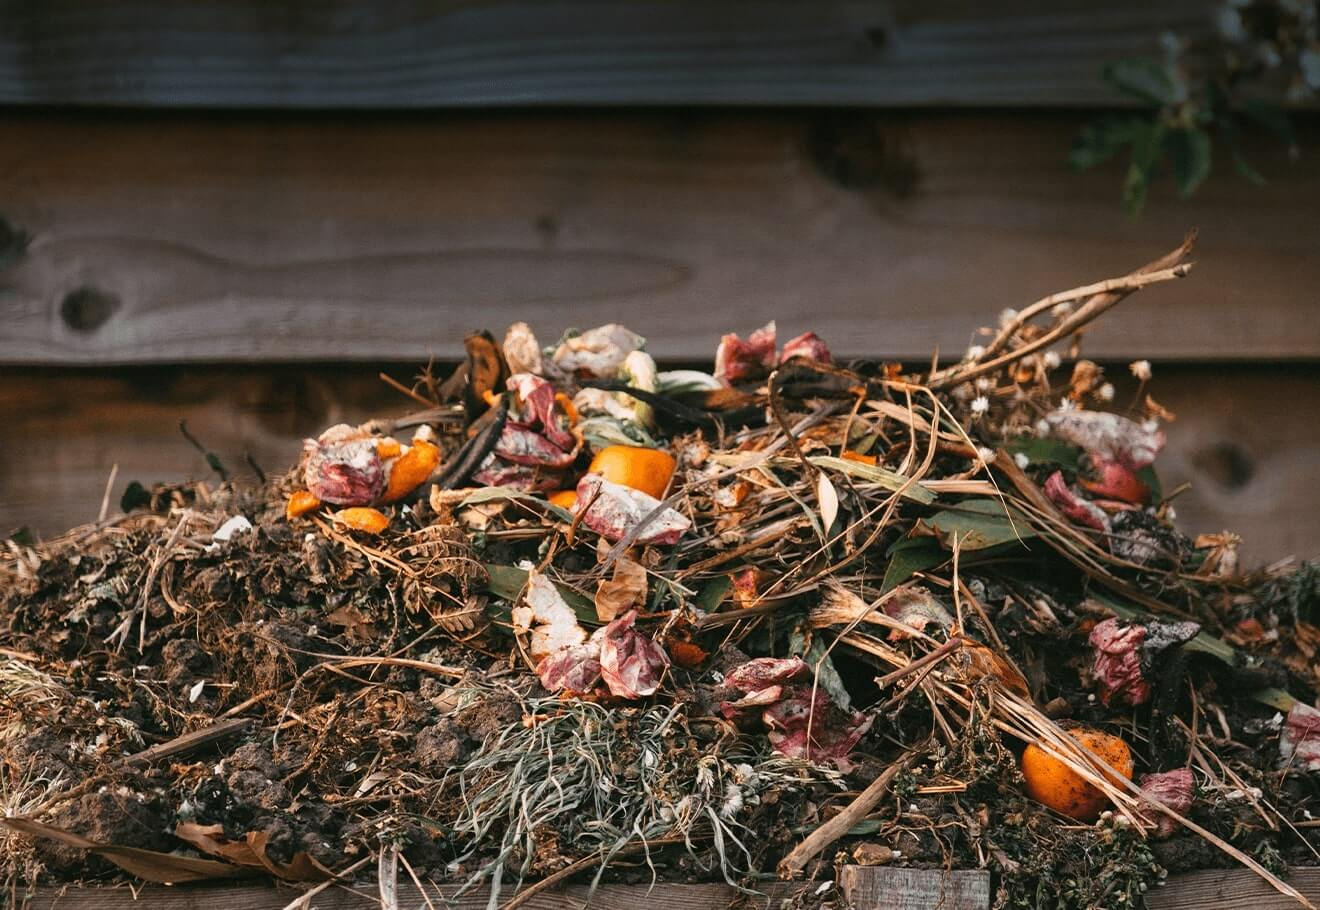 Composting pile in backyard